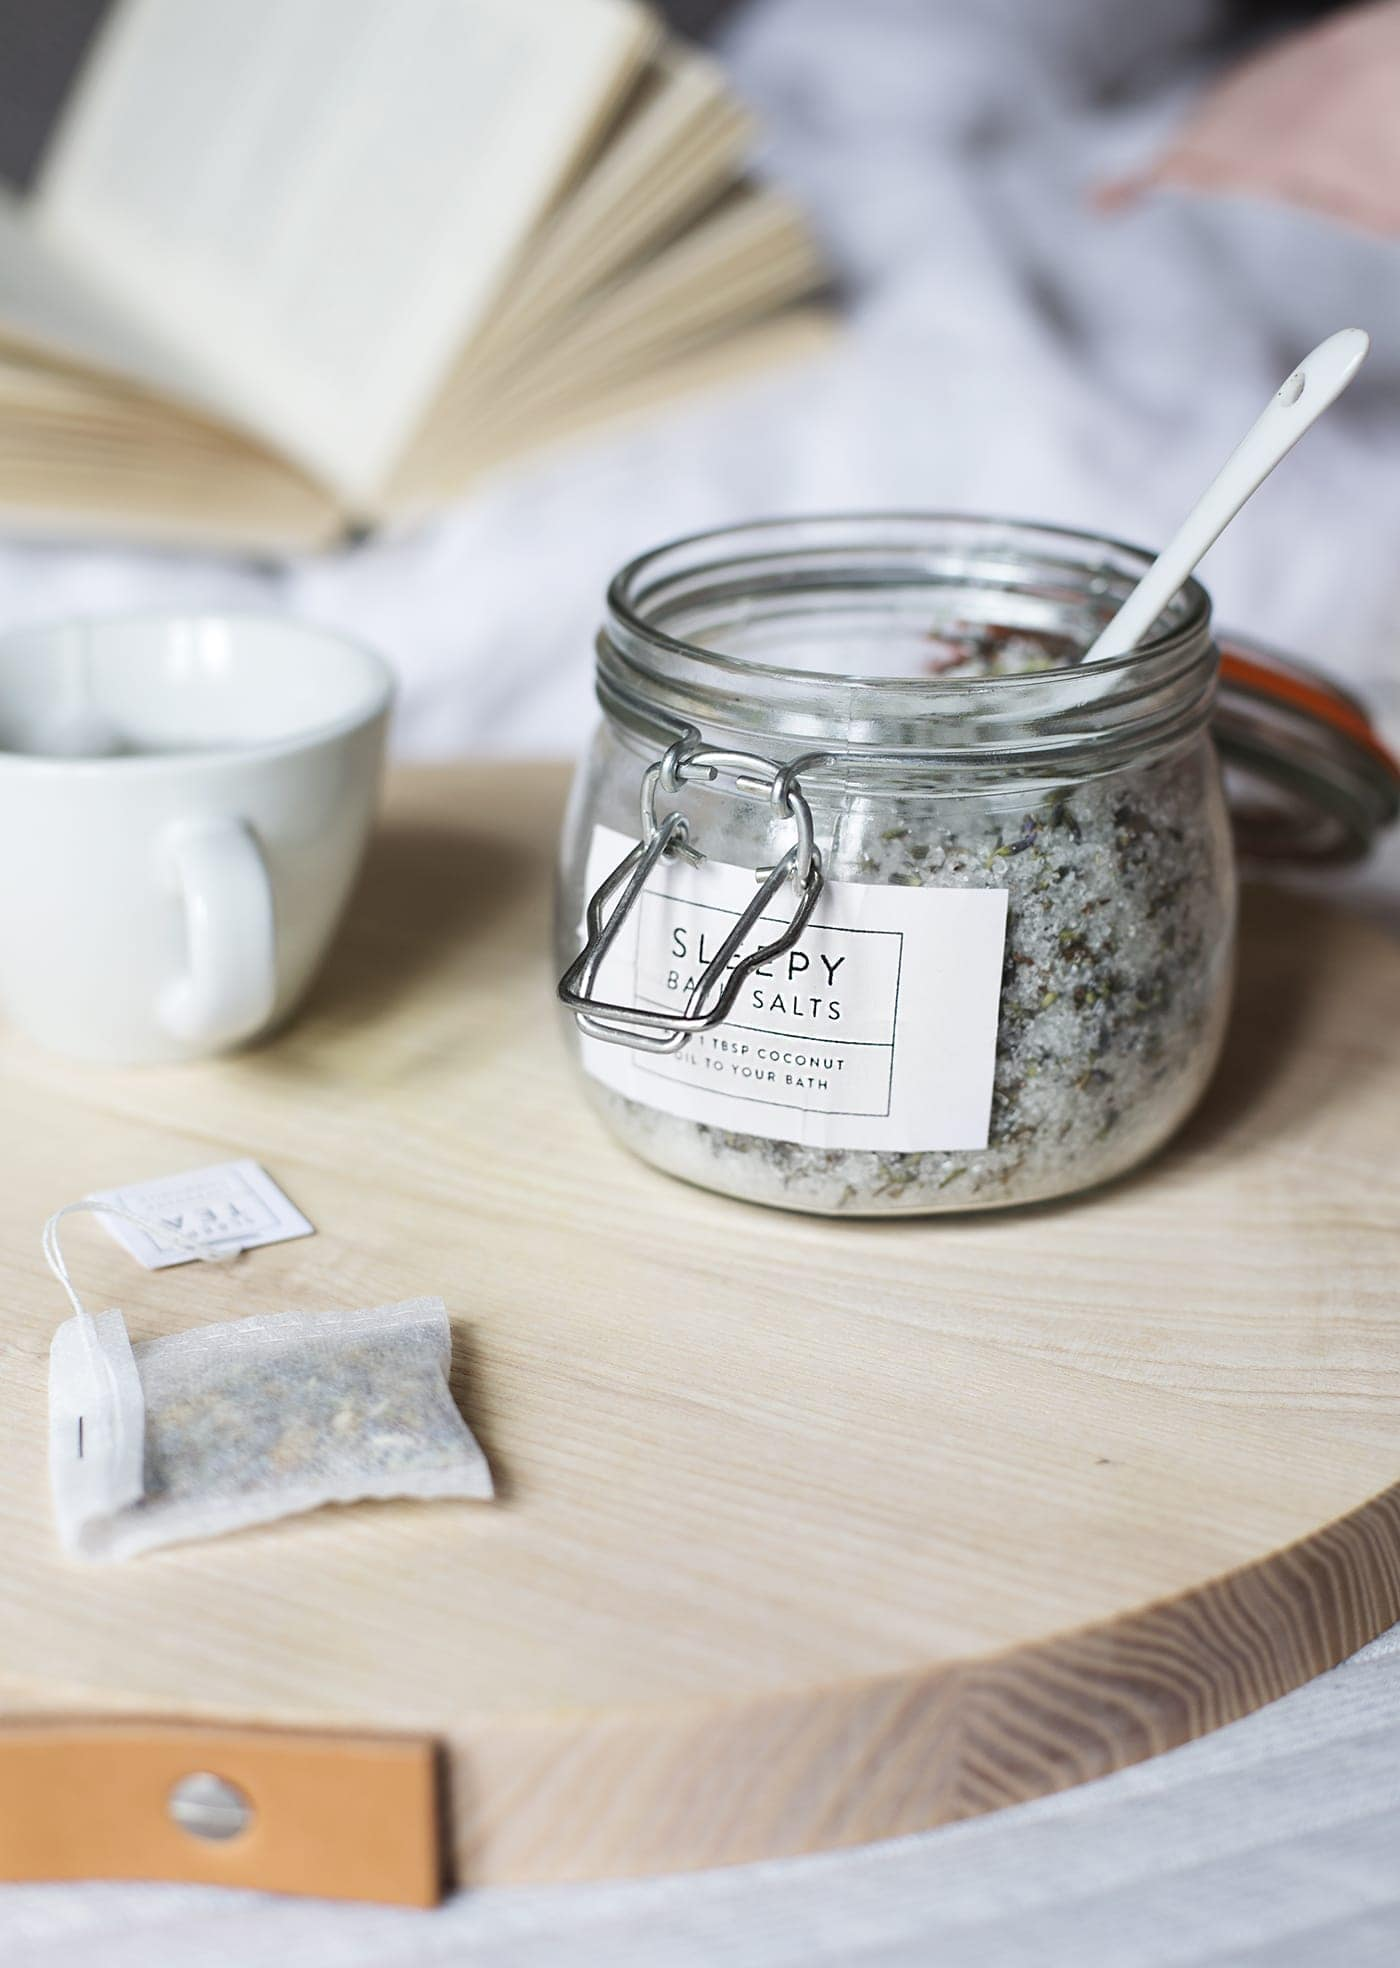 Leesa mattress | a better nights sleep | diy bath salts and tea